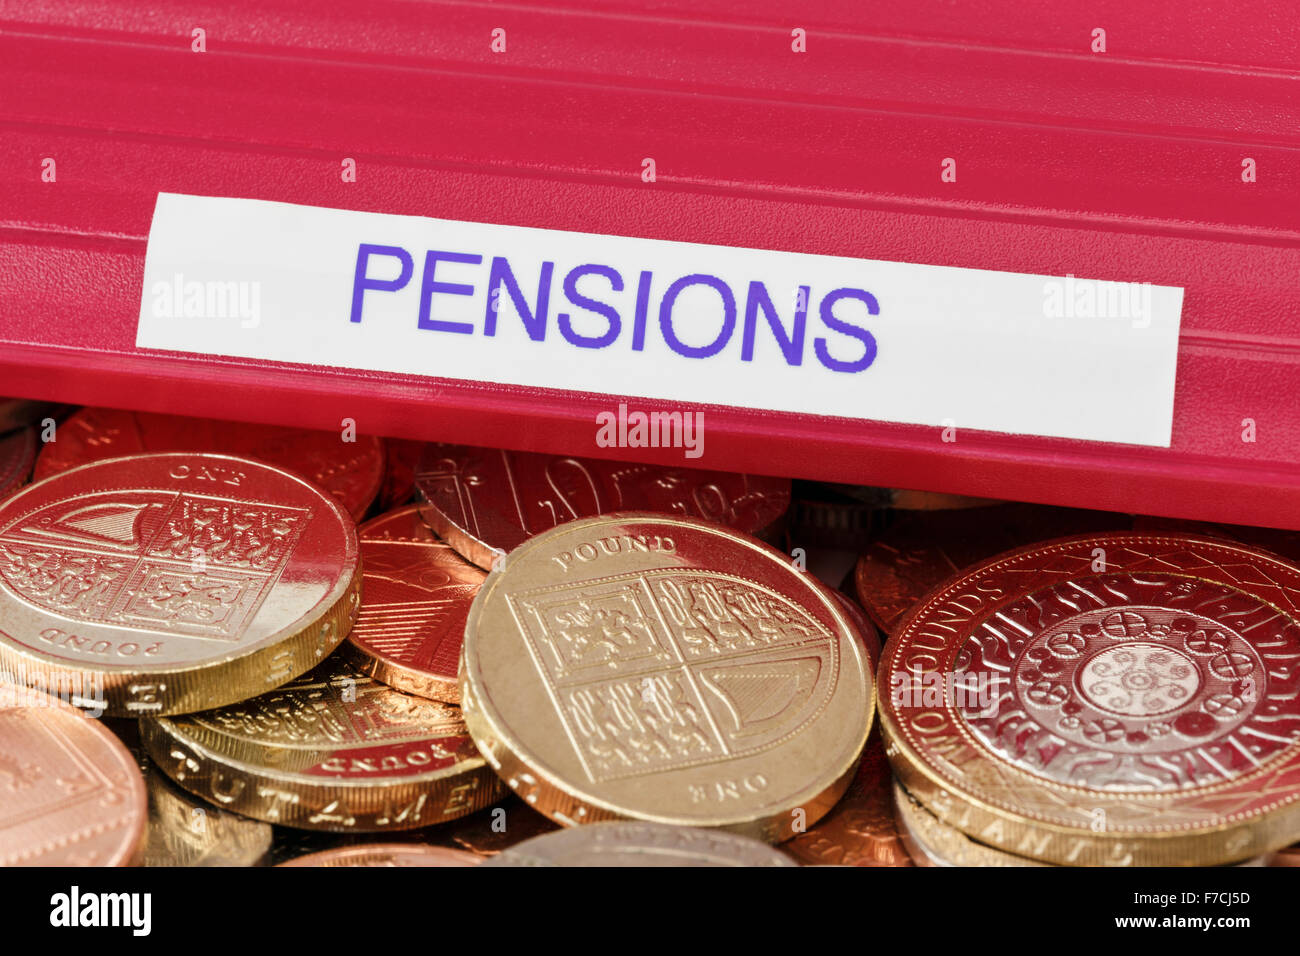 Pensions portfolio on a pile of sterling pound coins to illustrate investing money for retirement planning and pension - Stock Image